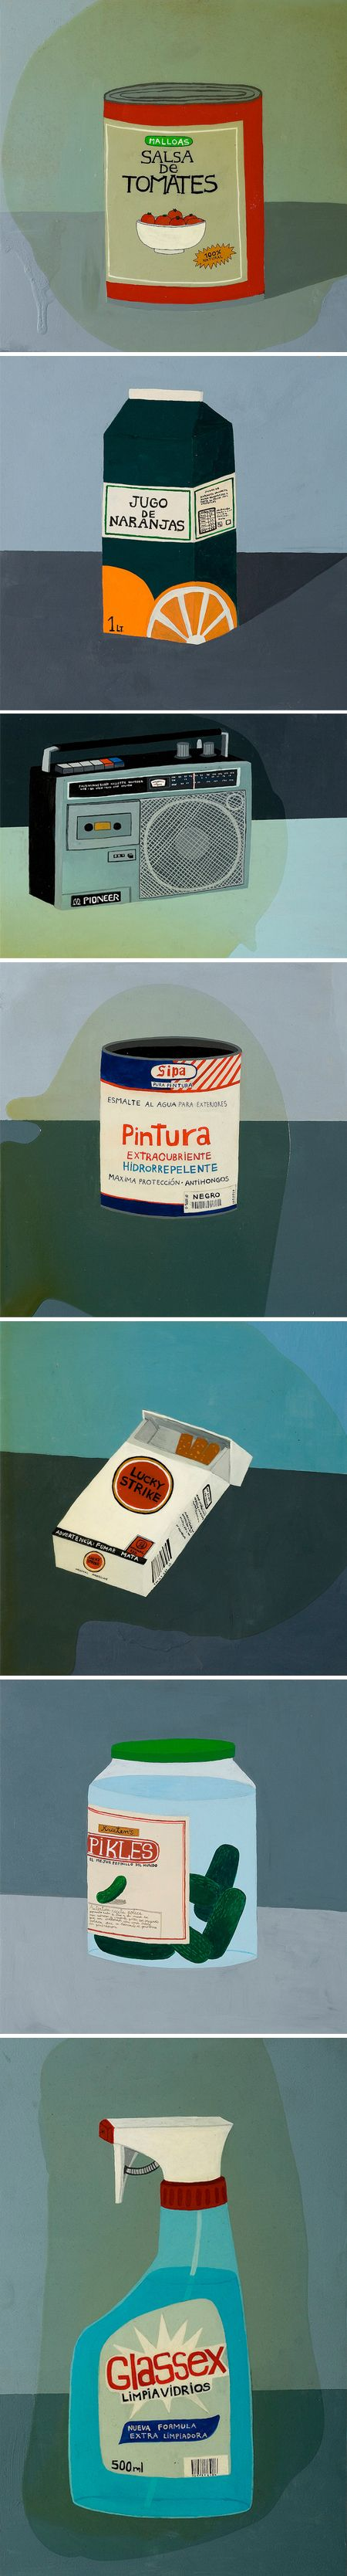 el grio's paintings of mundane objects via the jealous curator. See his work here: http://www.flickr.com/photos/griosis/